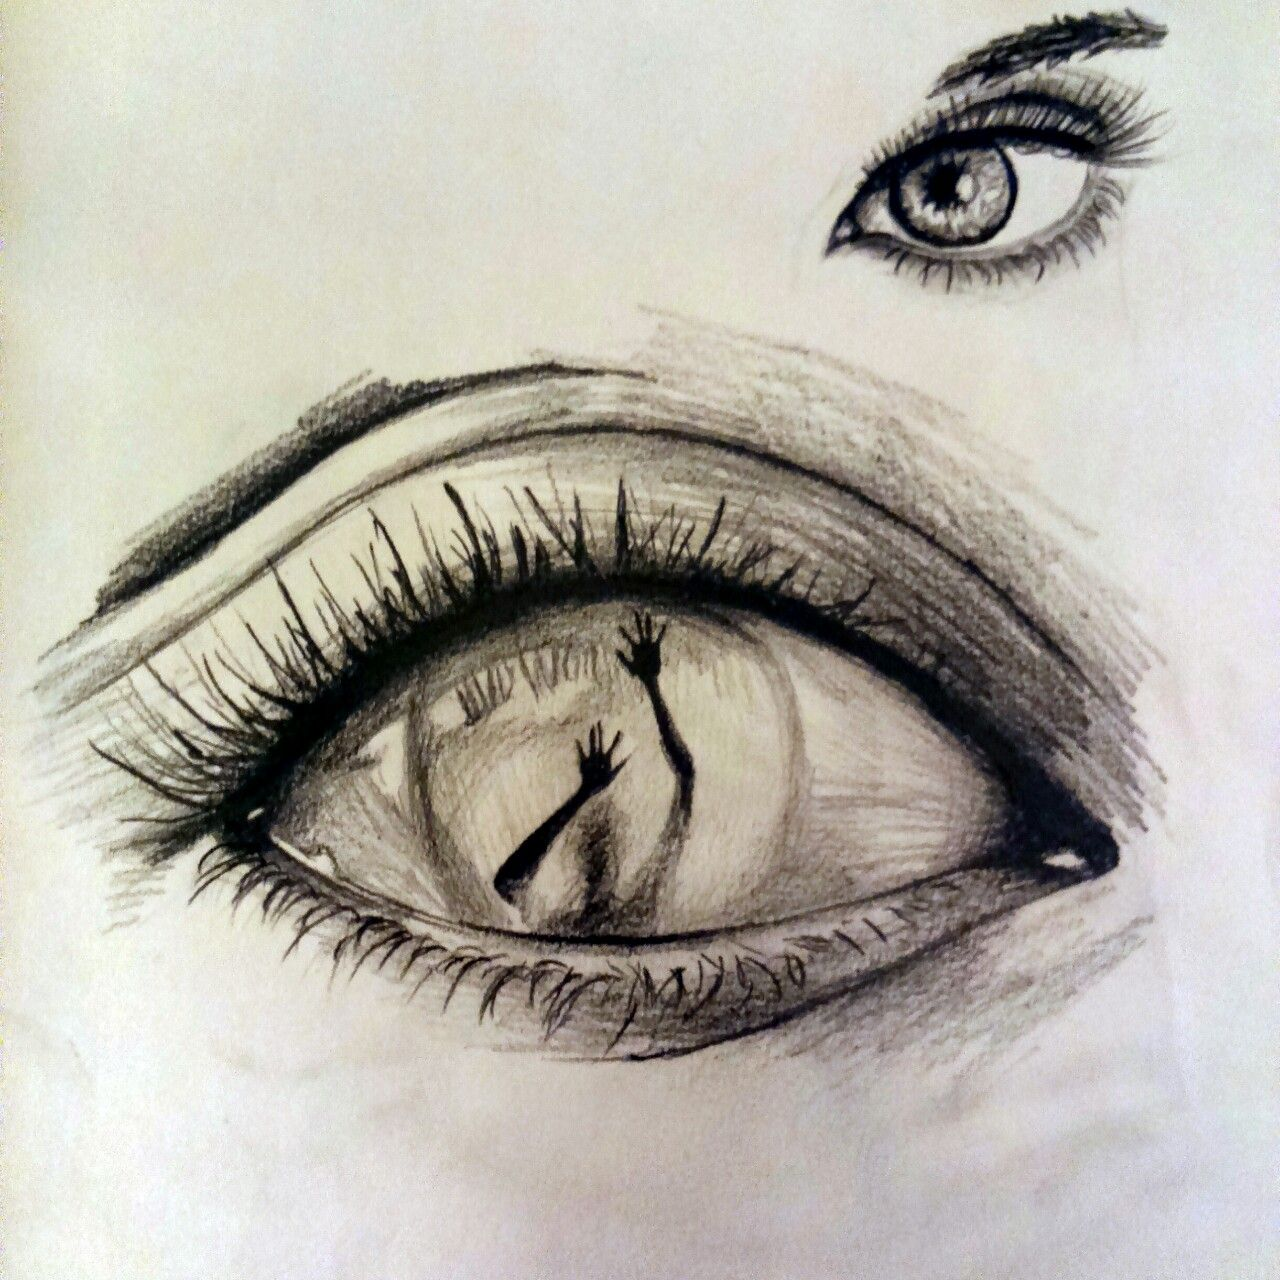 Resultado de imagen de drawing ideas tumblr eyes for Pencil sketch ideas